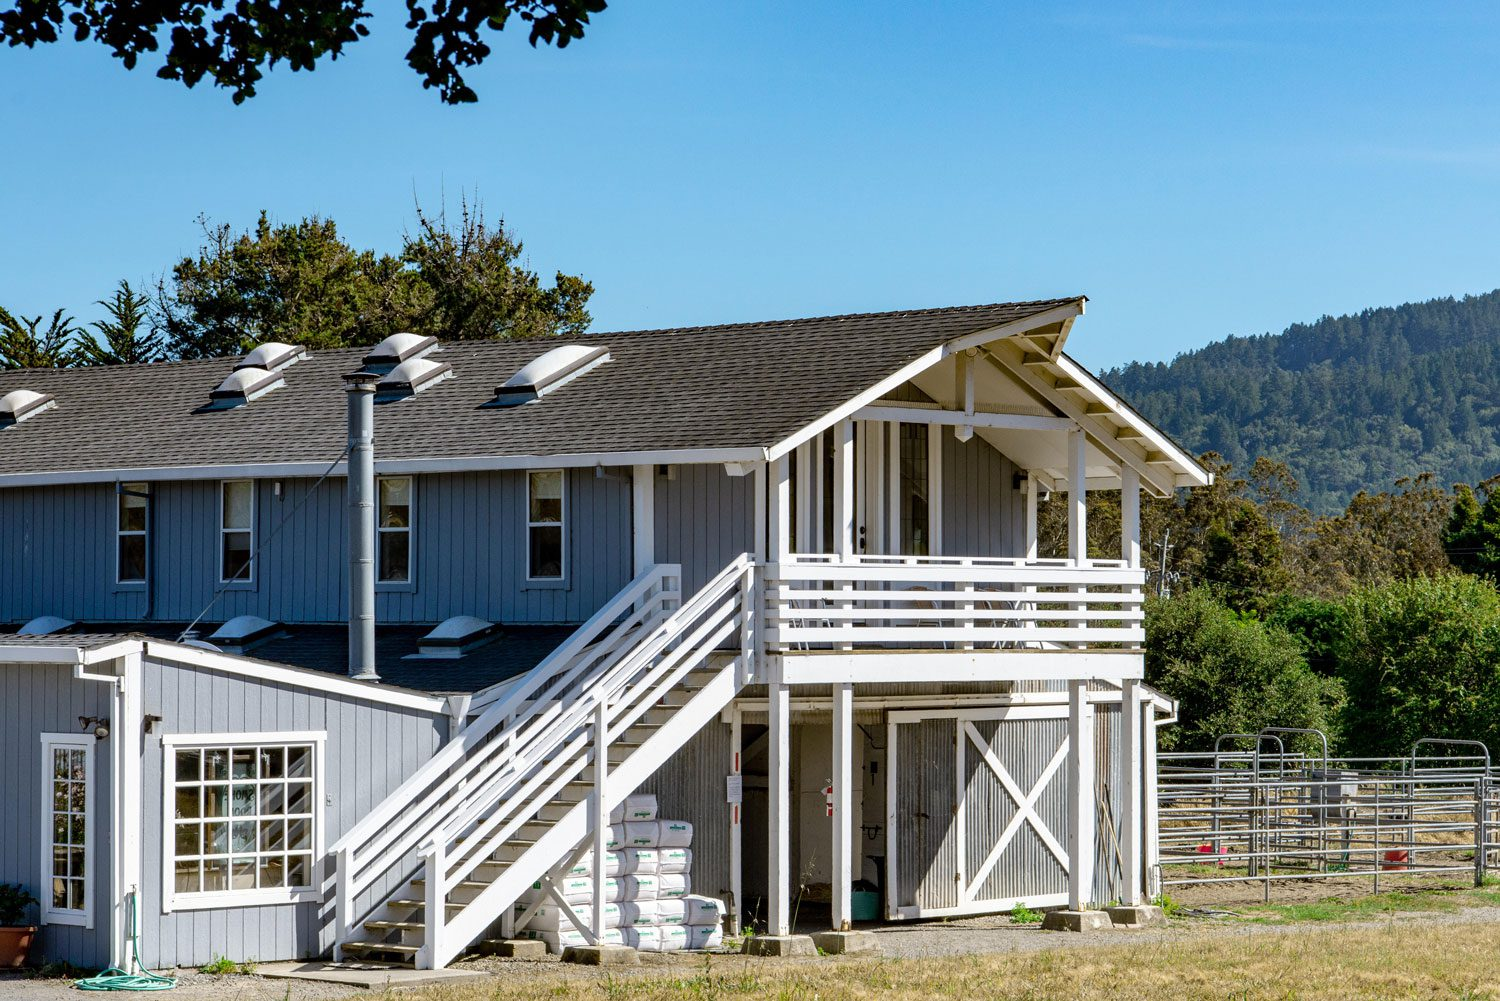 Point Reyes Vacation Rental Lodging for Groups with Horses